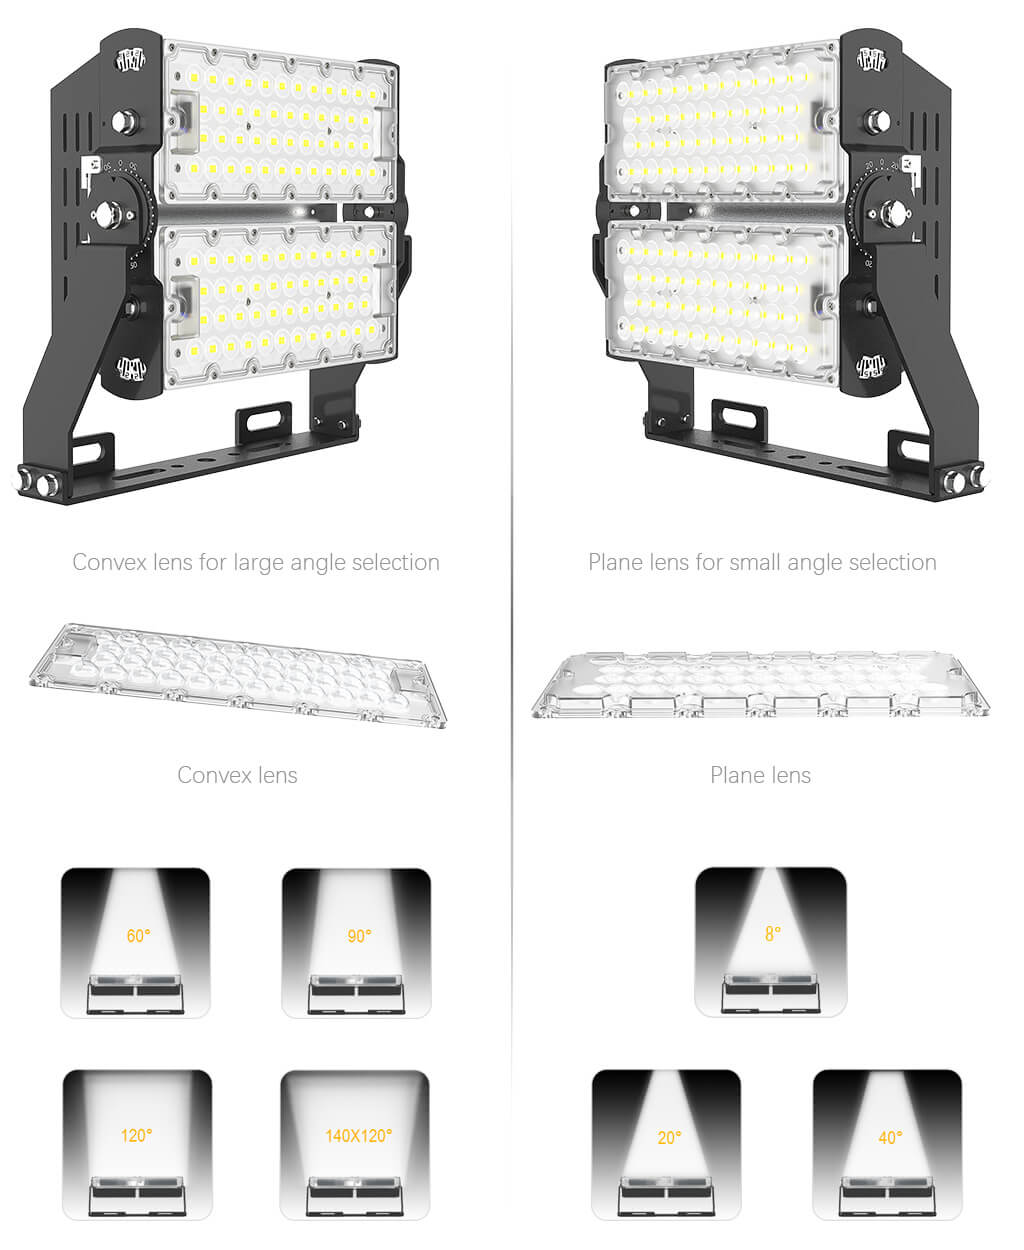 Best led interior floodlights seriesa for business for field lighting-13